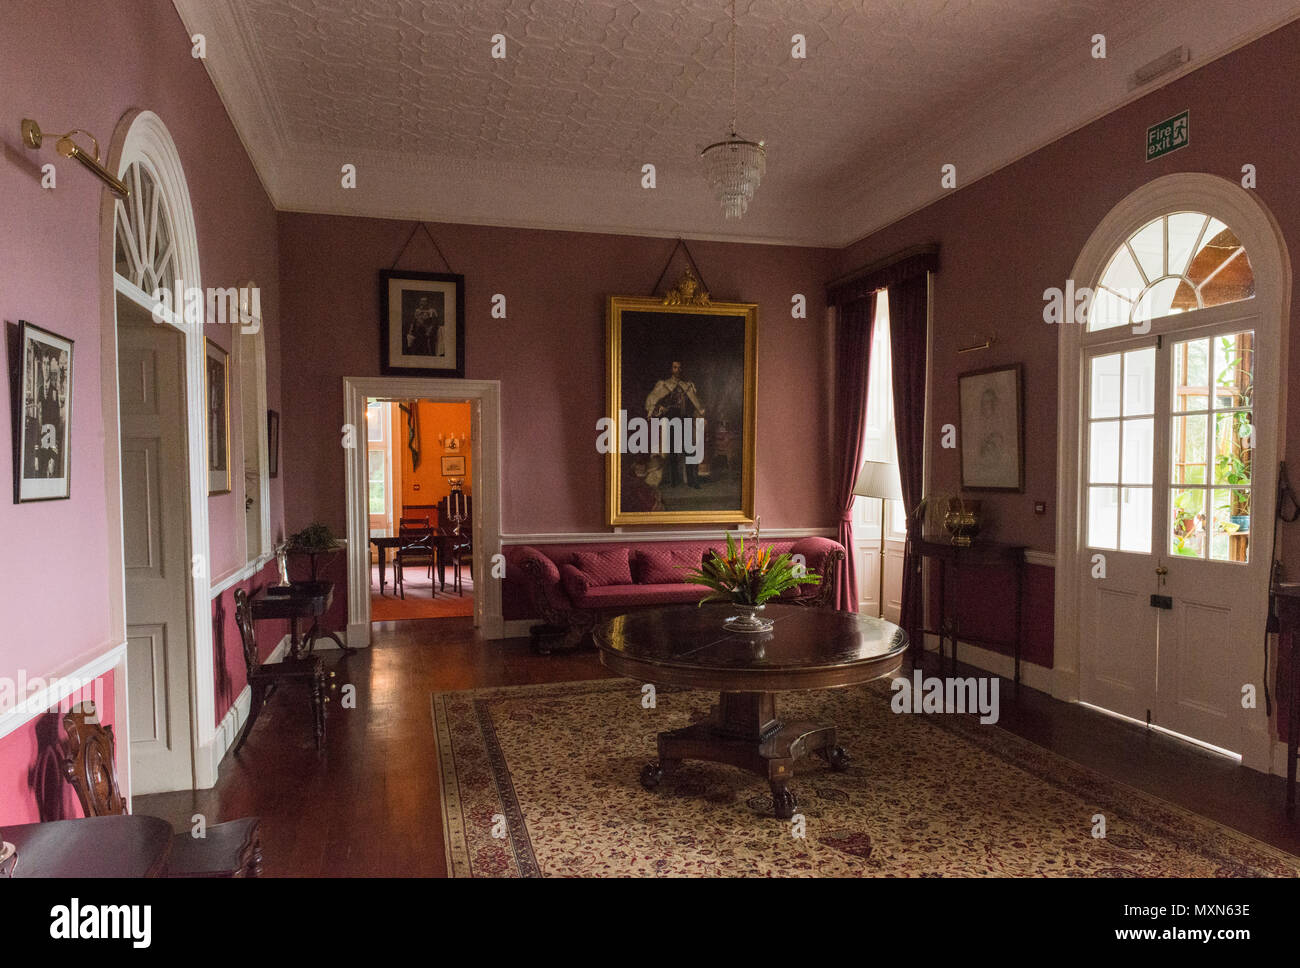 Entrance hallway of Plantation House, the British Governor's Residence. St Helena Stock Photo